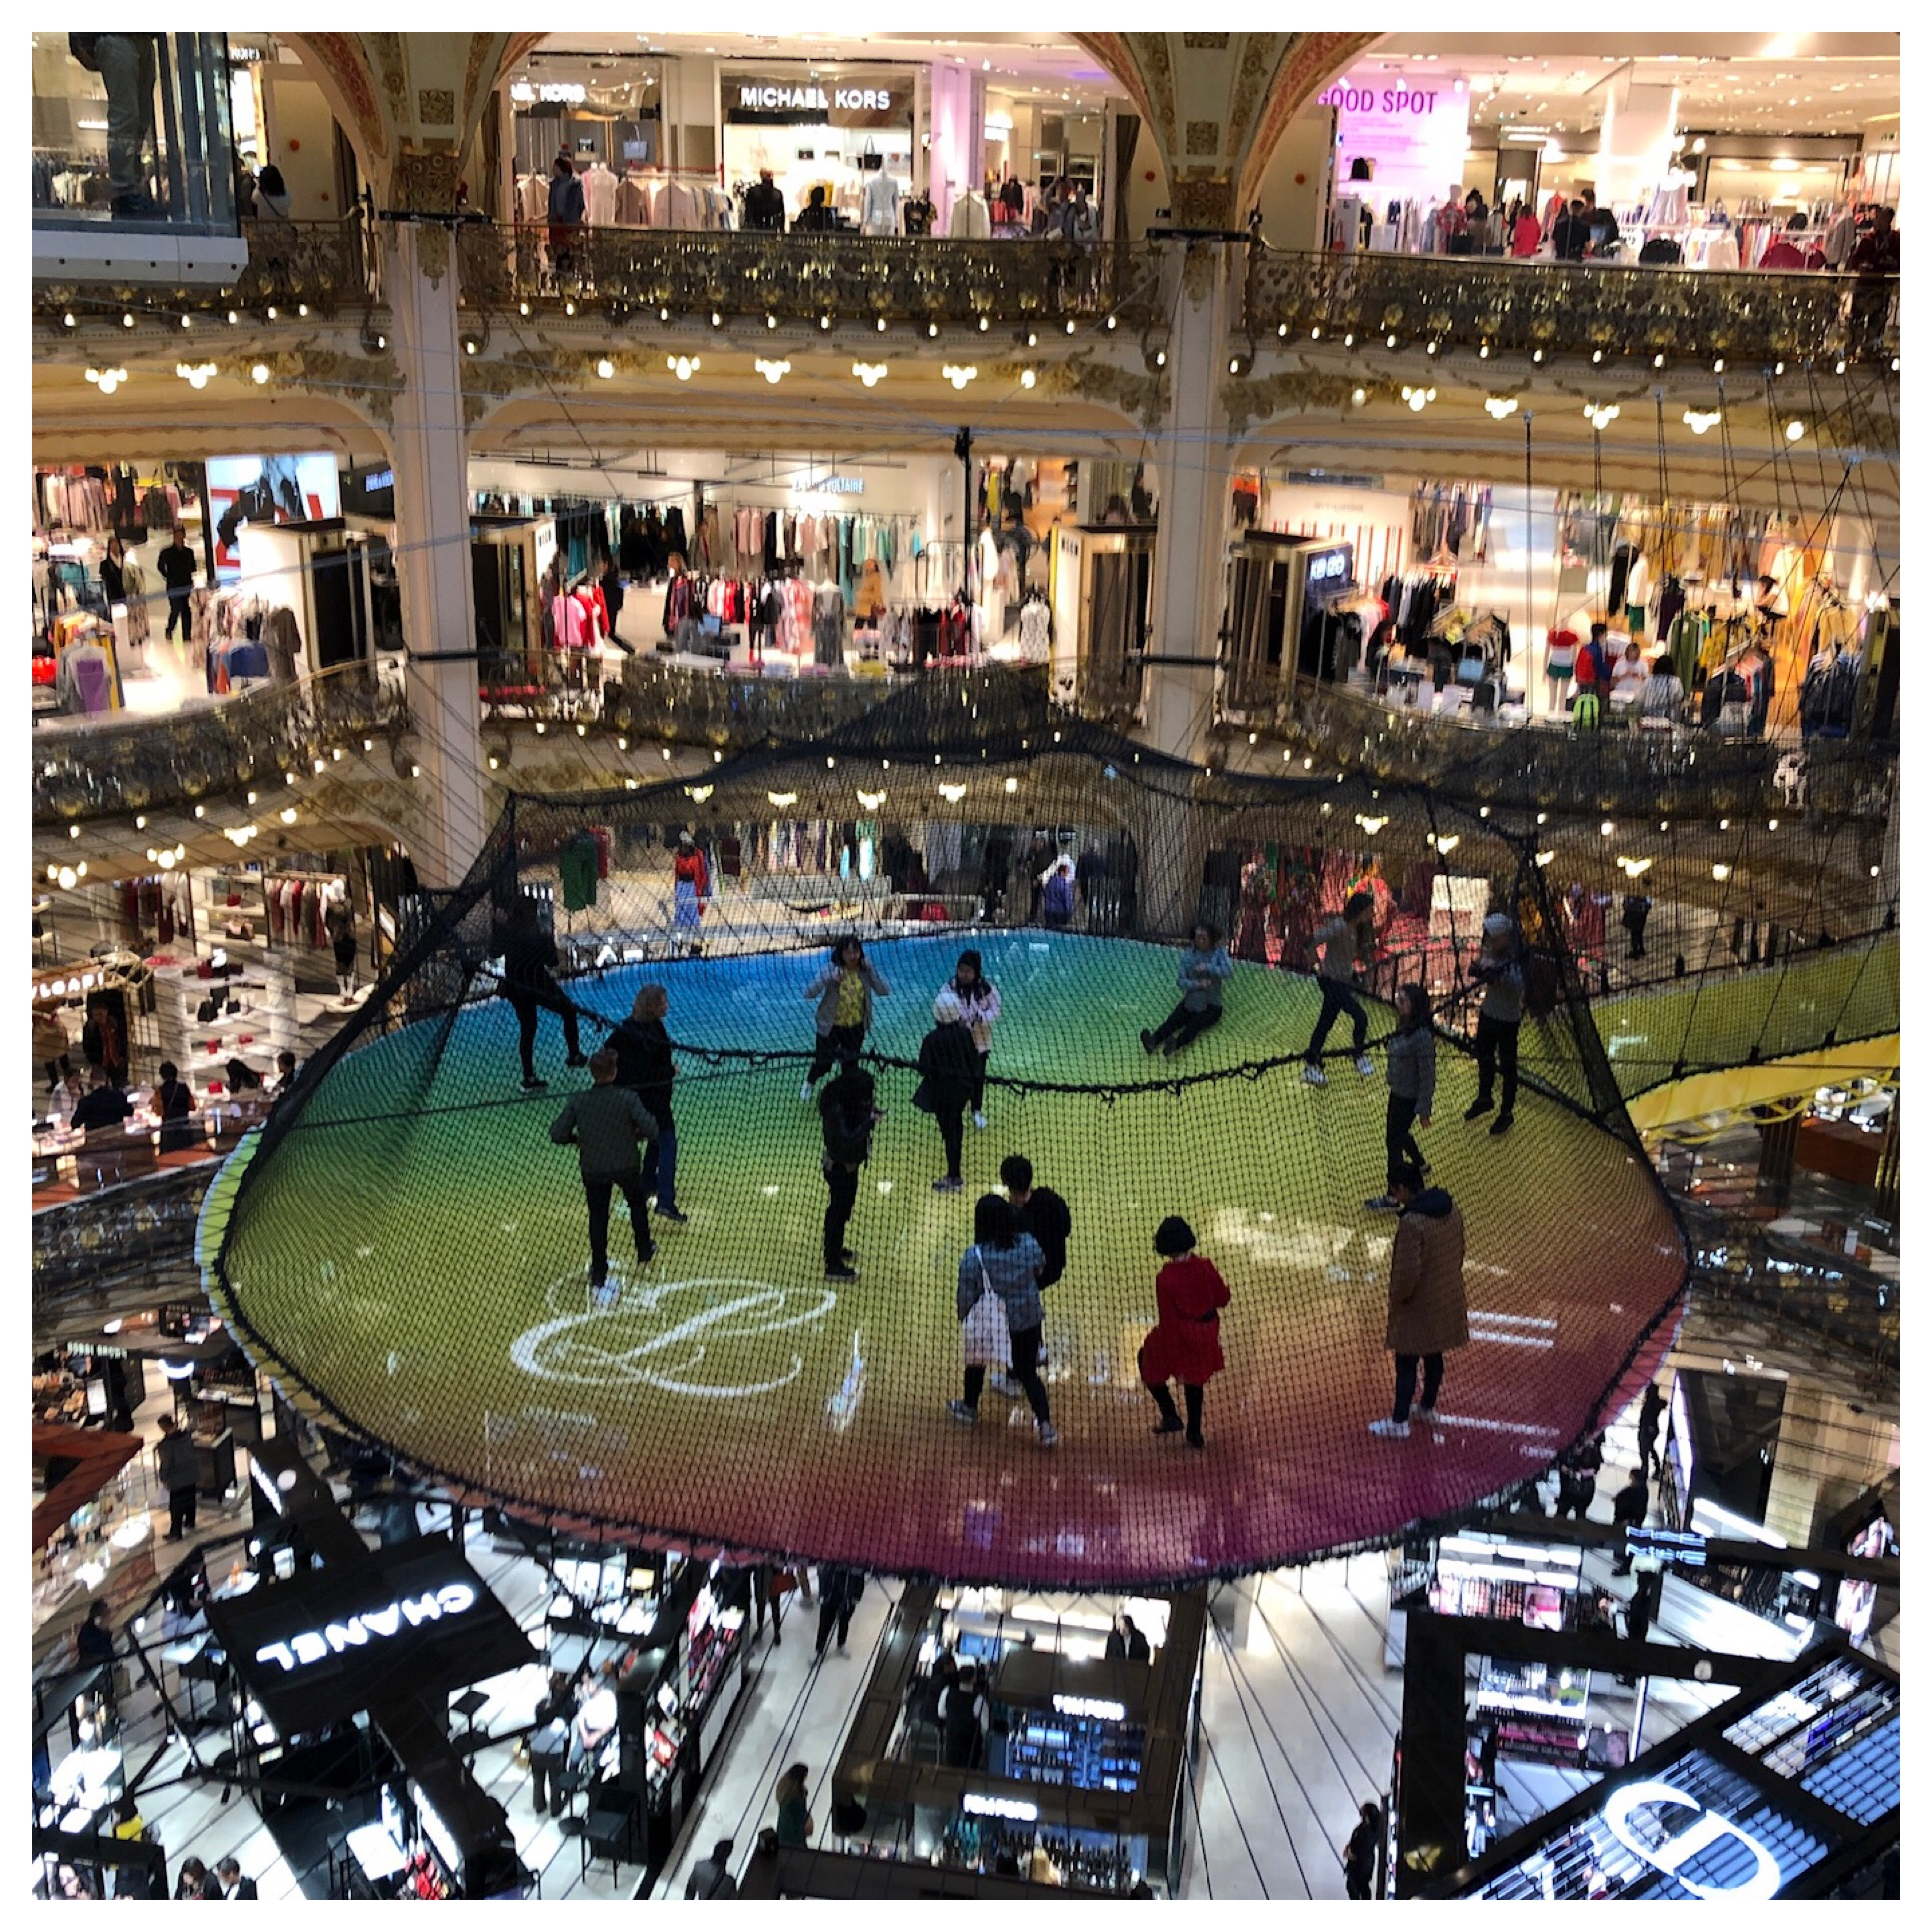 My favorite is Galleries Lafayette. It has an incredible Tiffany ceiling, great restaurants and fun fashions. When I was there over Christmas they had a big Christmas tree that has now been replaced by a huge trampoline that people enter from the 4th level. No thanks!